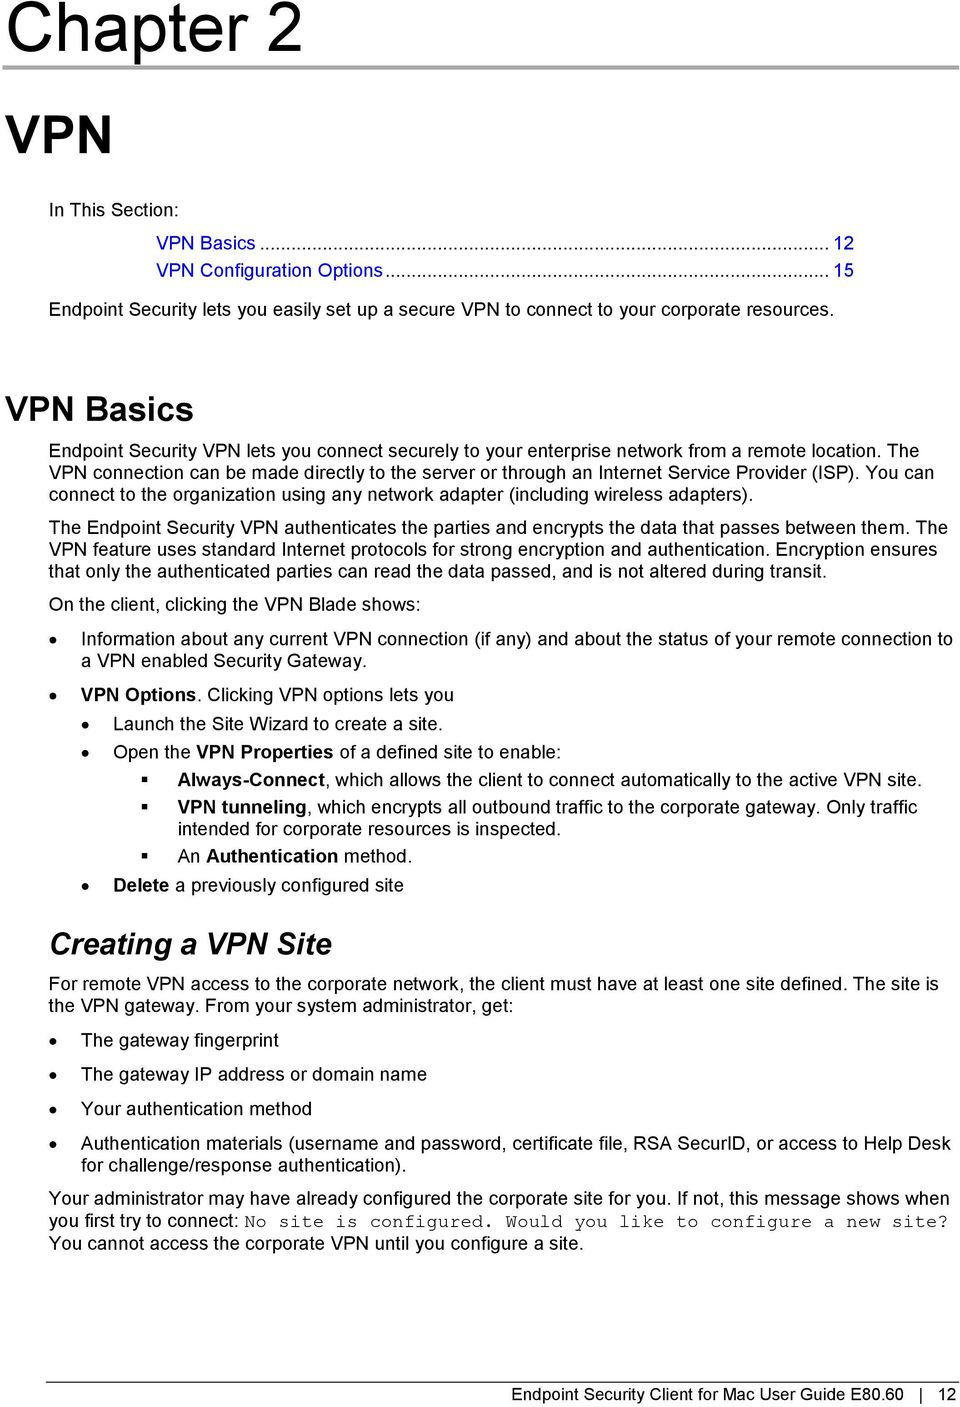 The VPN connection can be made directly to the server or through an Internet Service Provider (ISP). You can connect to the organization using any network adapter (including wireless adapters).